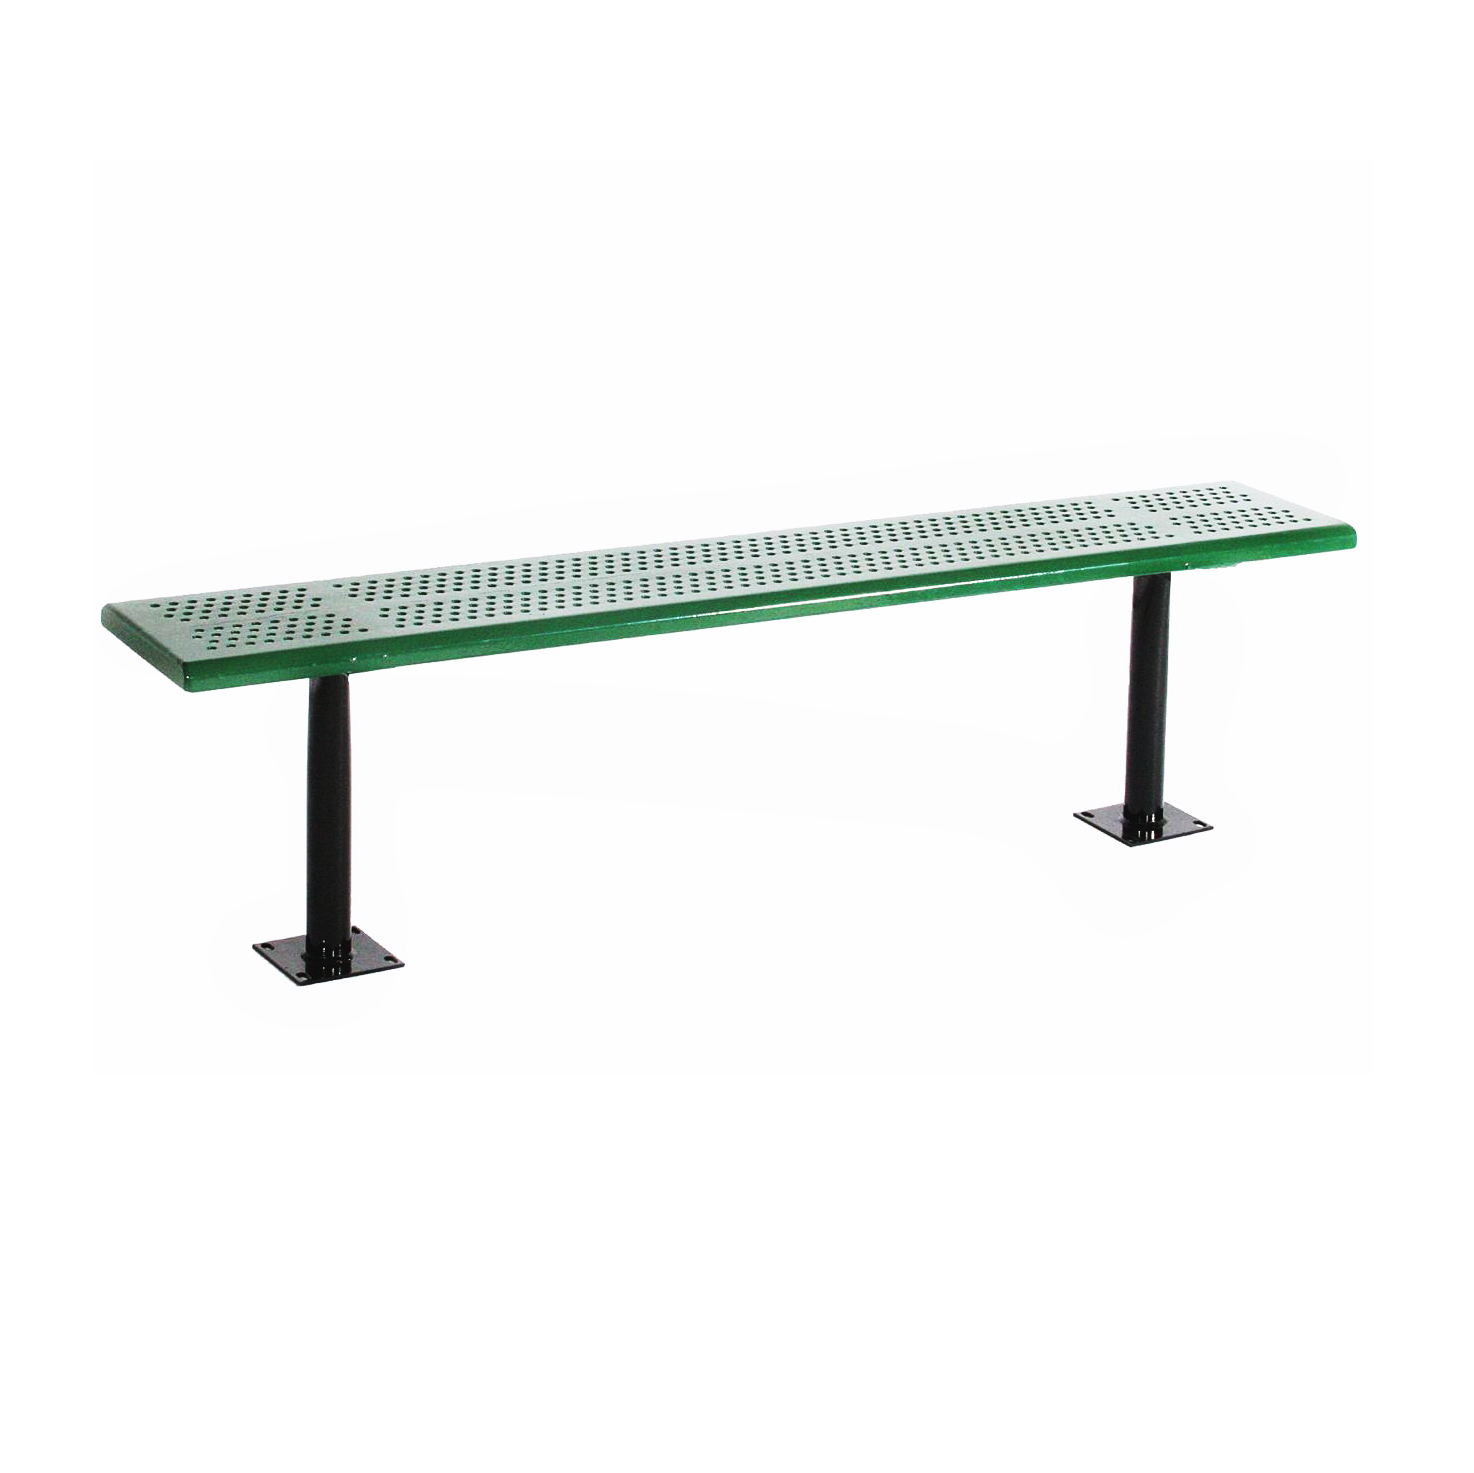 Amazing photo of Standard Bench without Back by SportsPlay AAA State of Play with #376C4A color and 1280x916 pixels